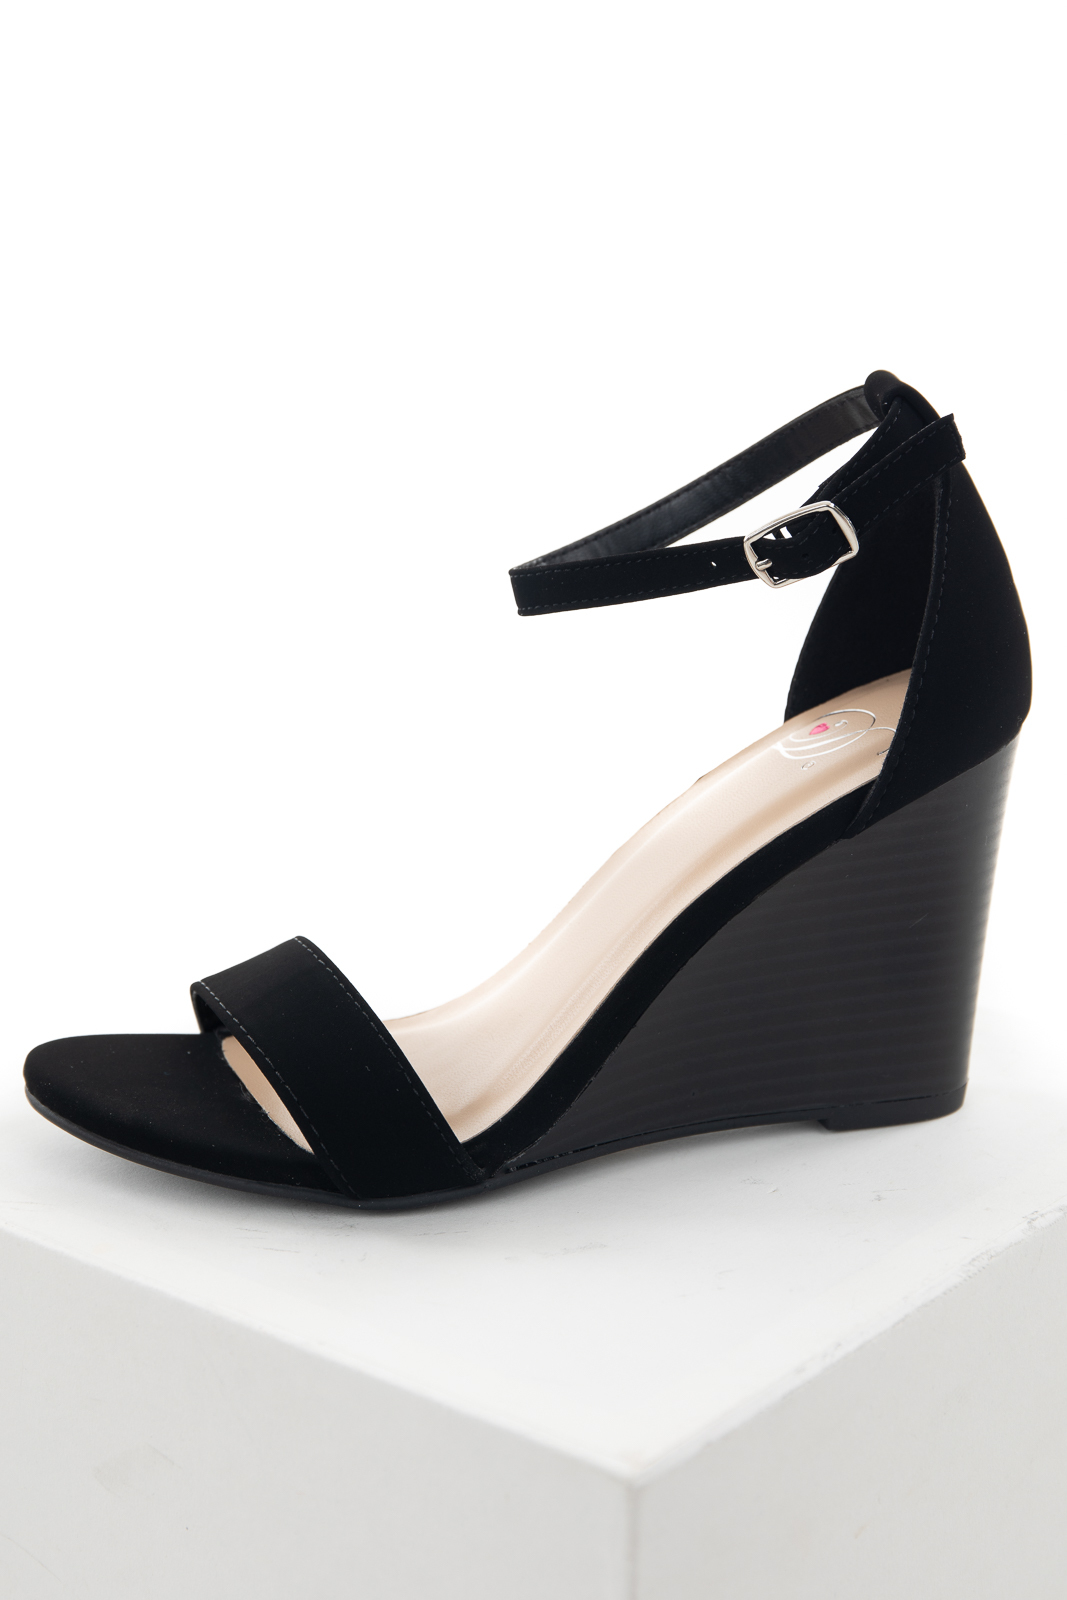 Black Faux Suede Ankle Strap Wedge Heels with Buckle Closure